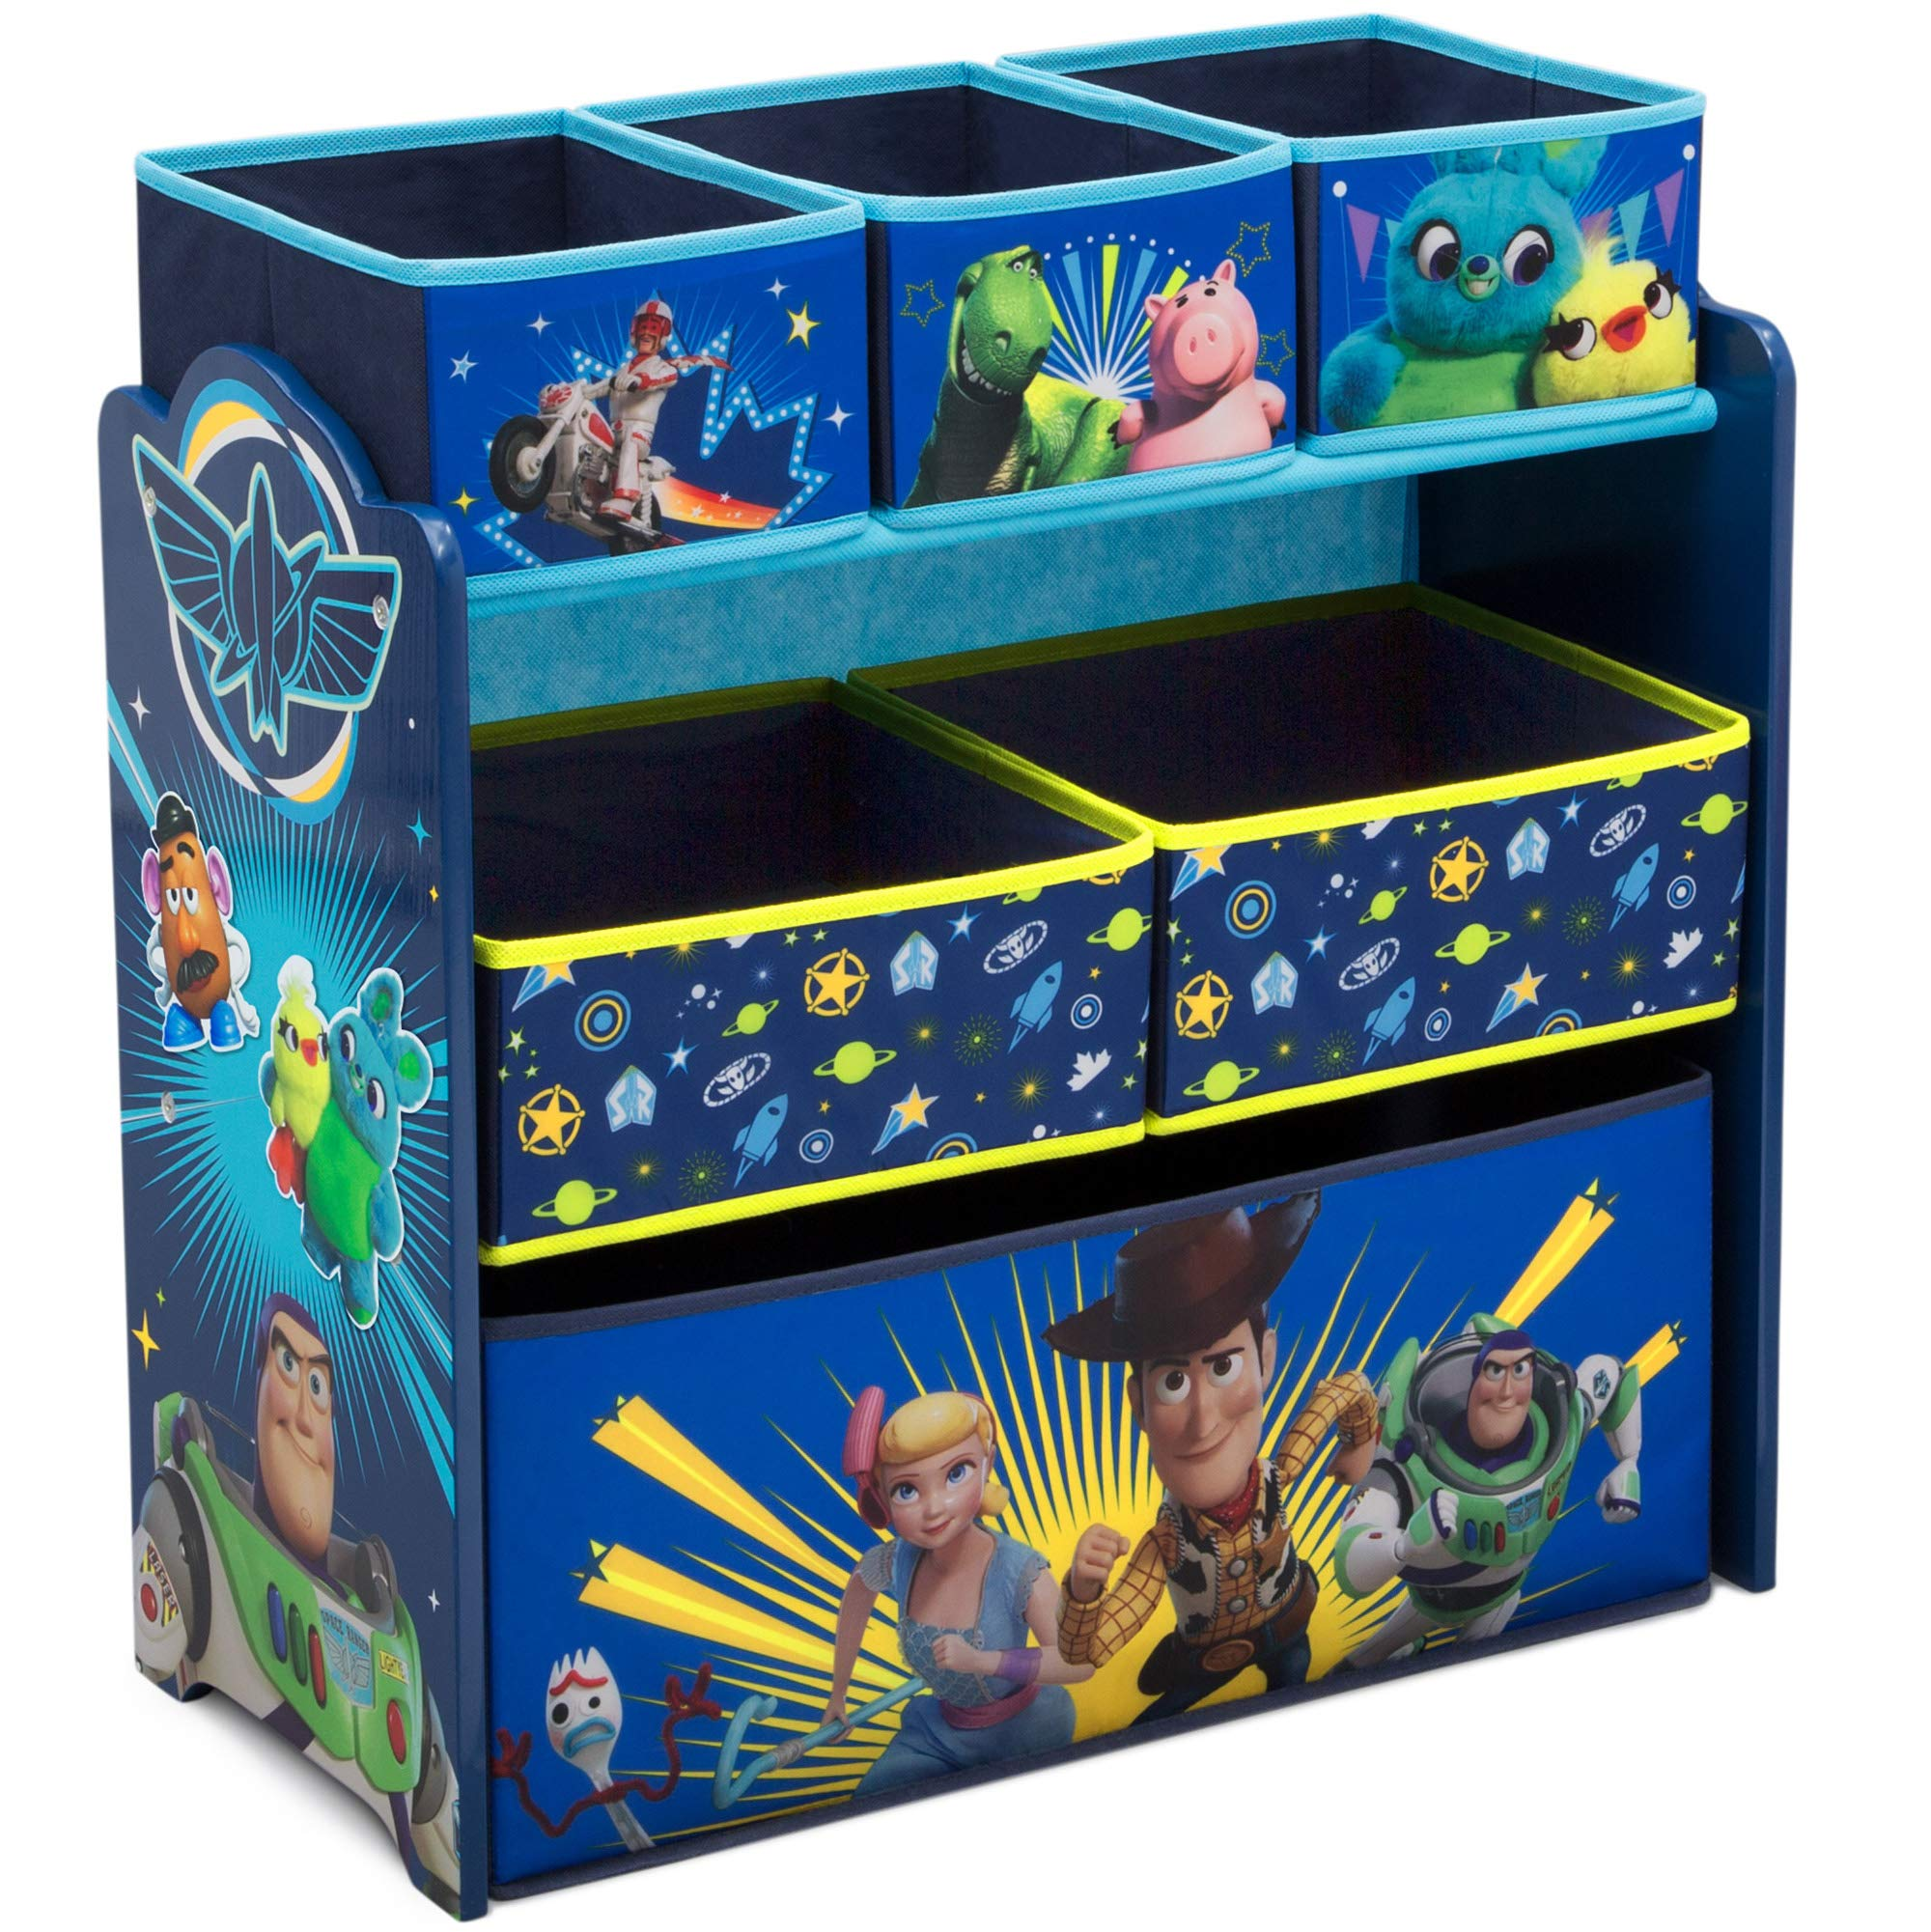 Delta Children Design and Store Toy Organizer, Disney/Pixar Toy Story 4 by Delta Children